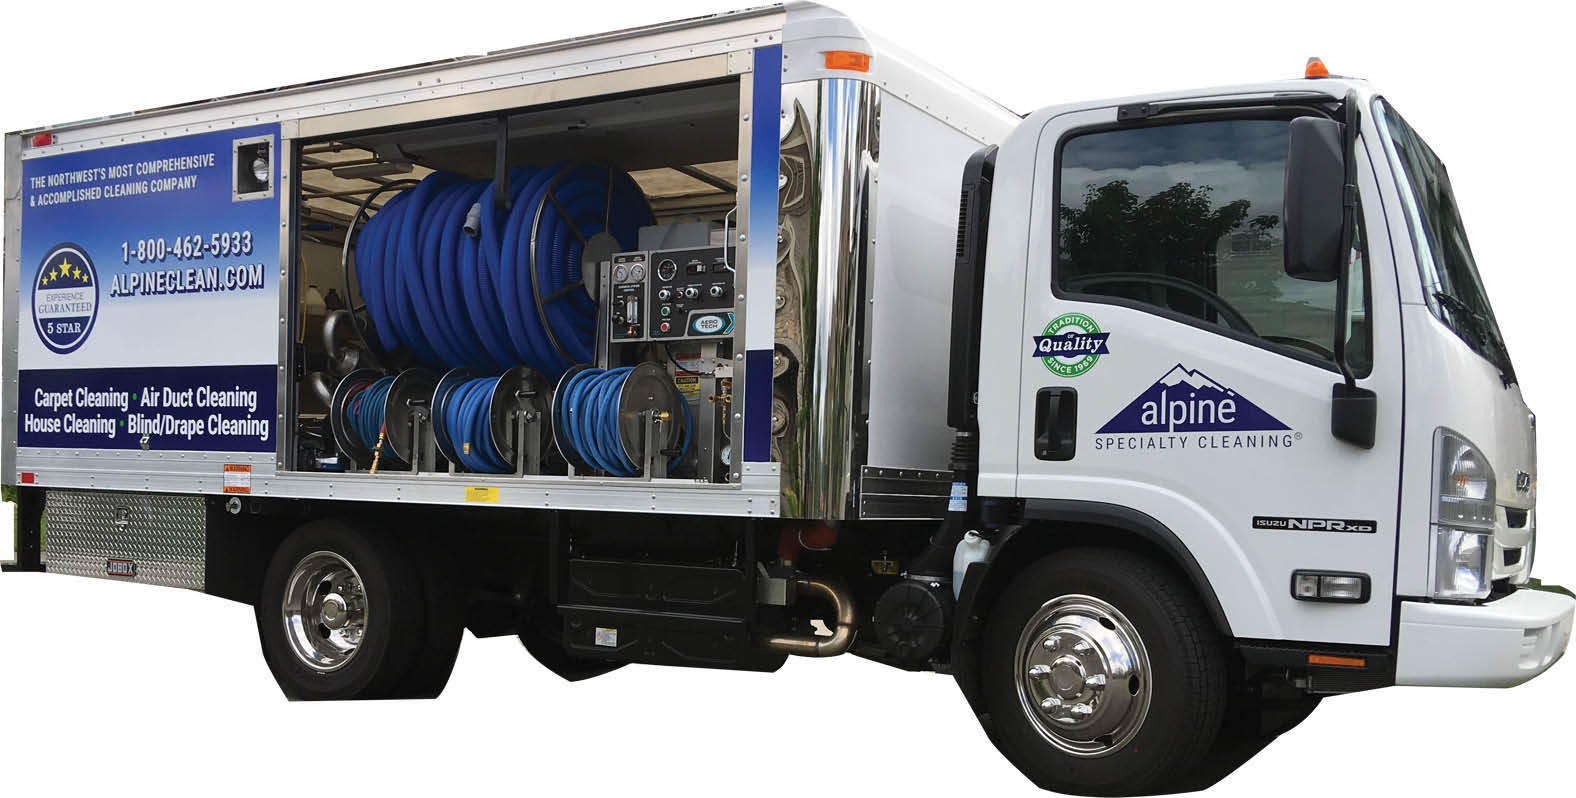 Alpine Specialty Cleaning Ultra-Premium Carpet Cleaning Super Truck